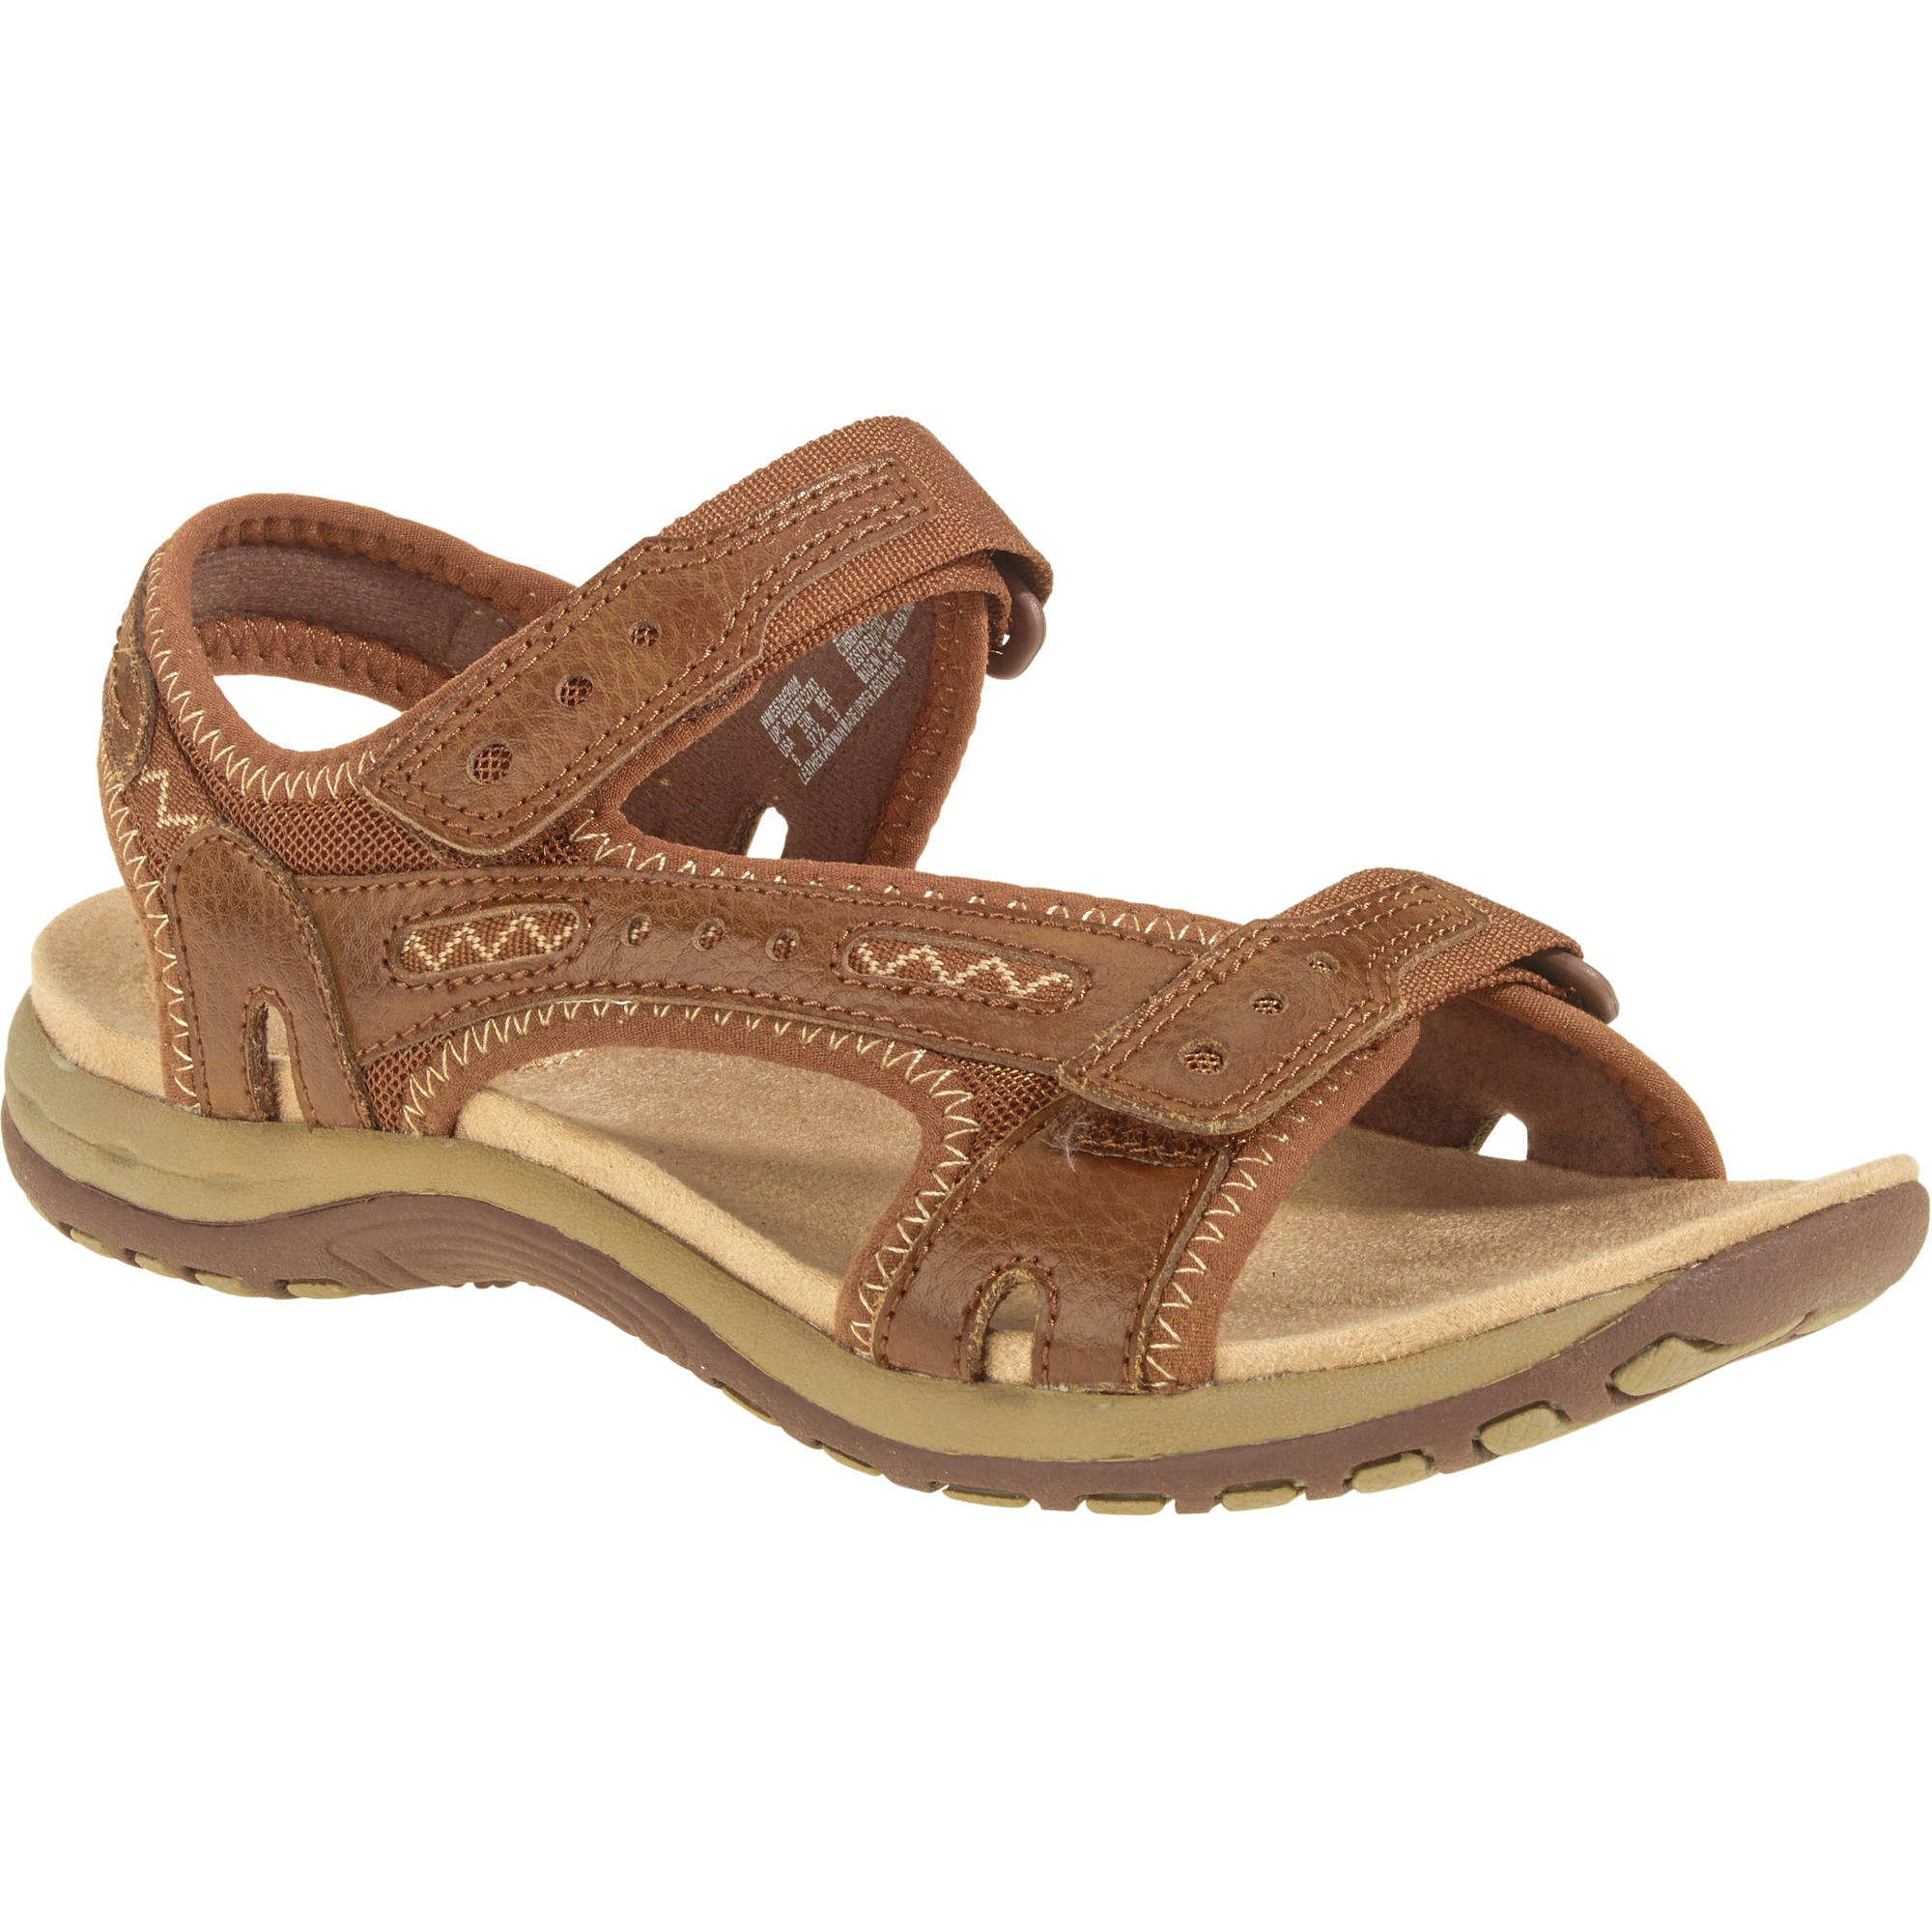 Earth Spririt Women's Lexi Sandal